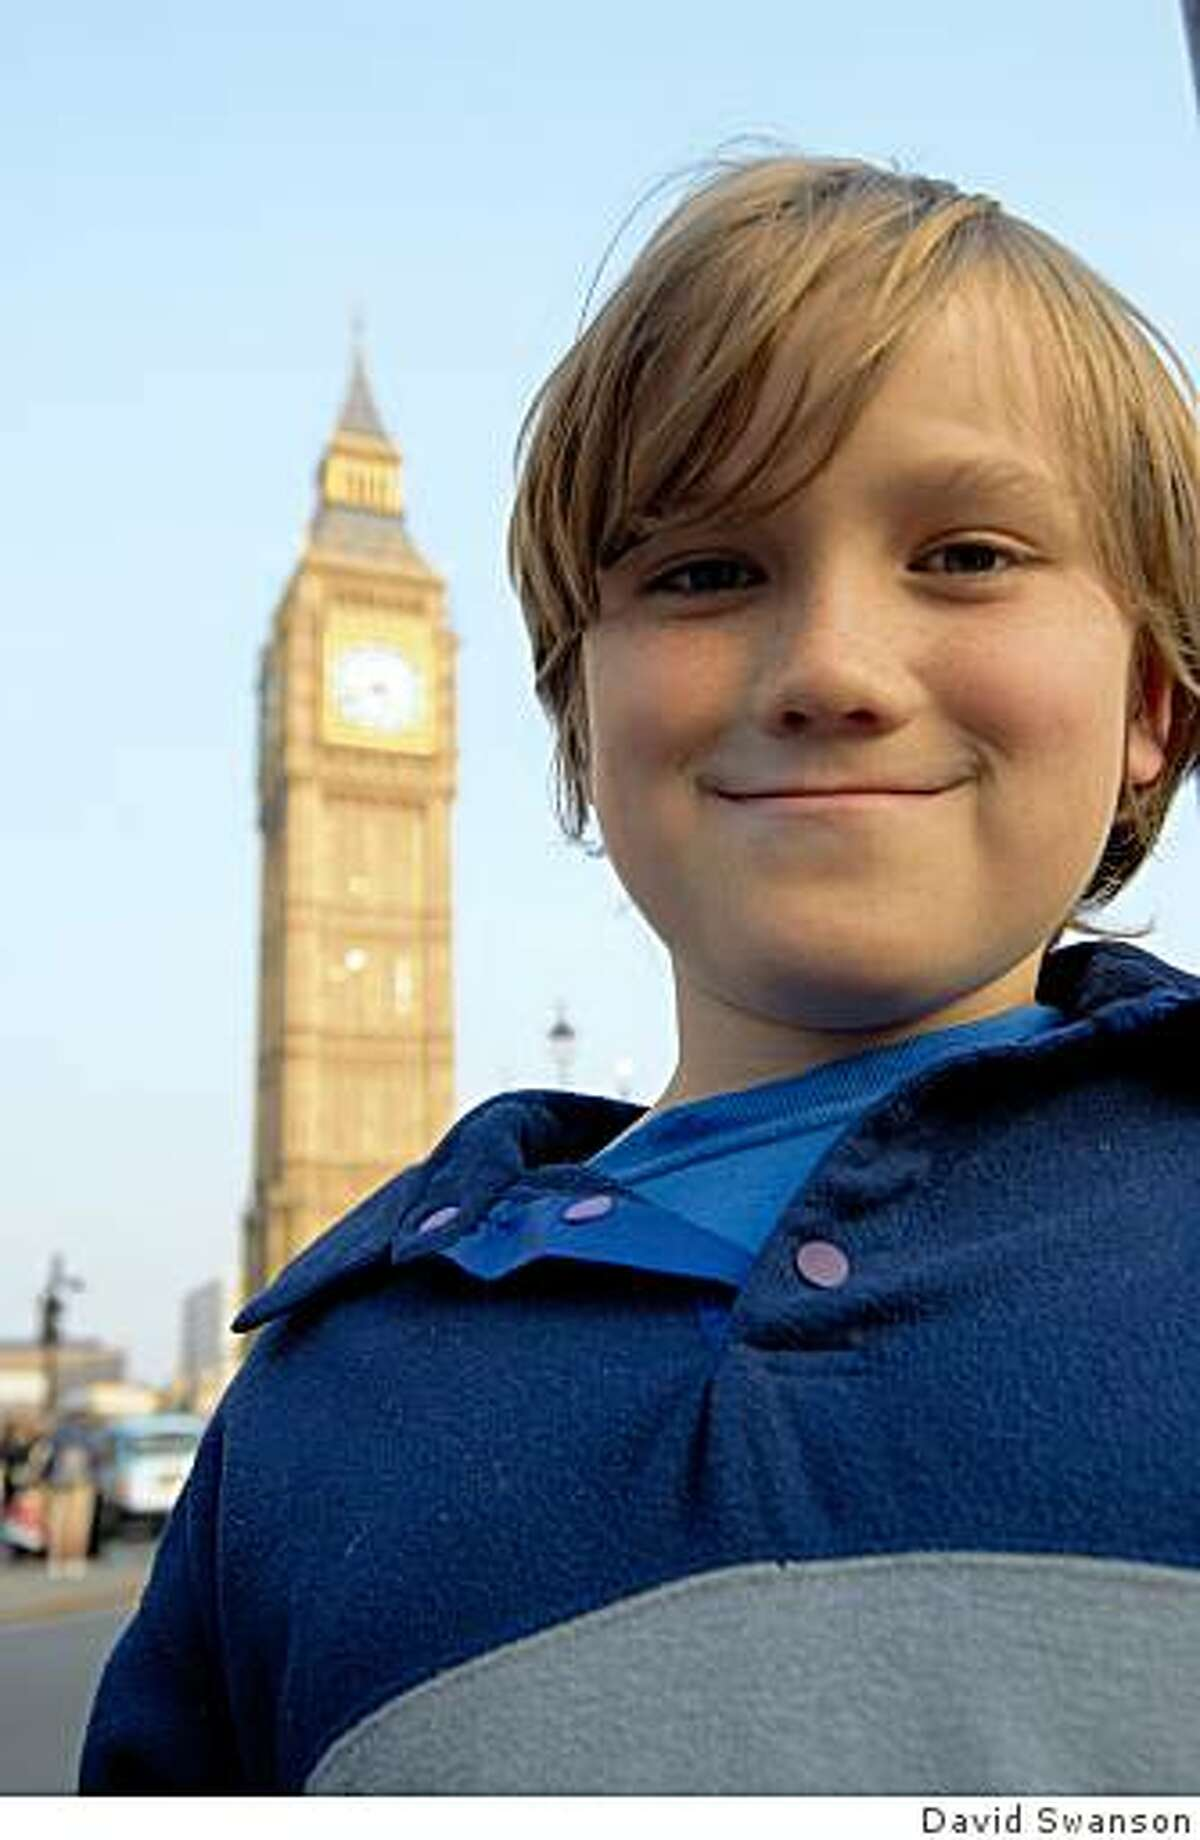 Julian in front of Big Ben, the clock rising above the Palace of Westminster.